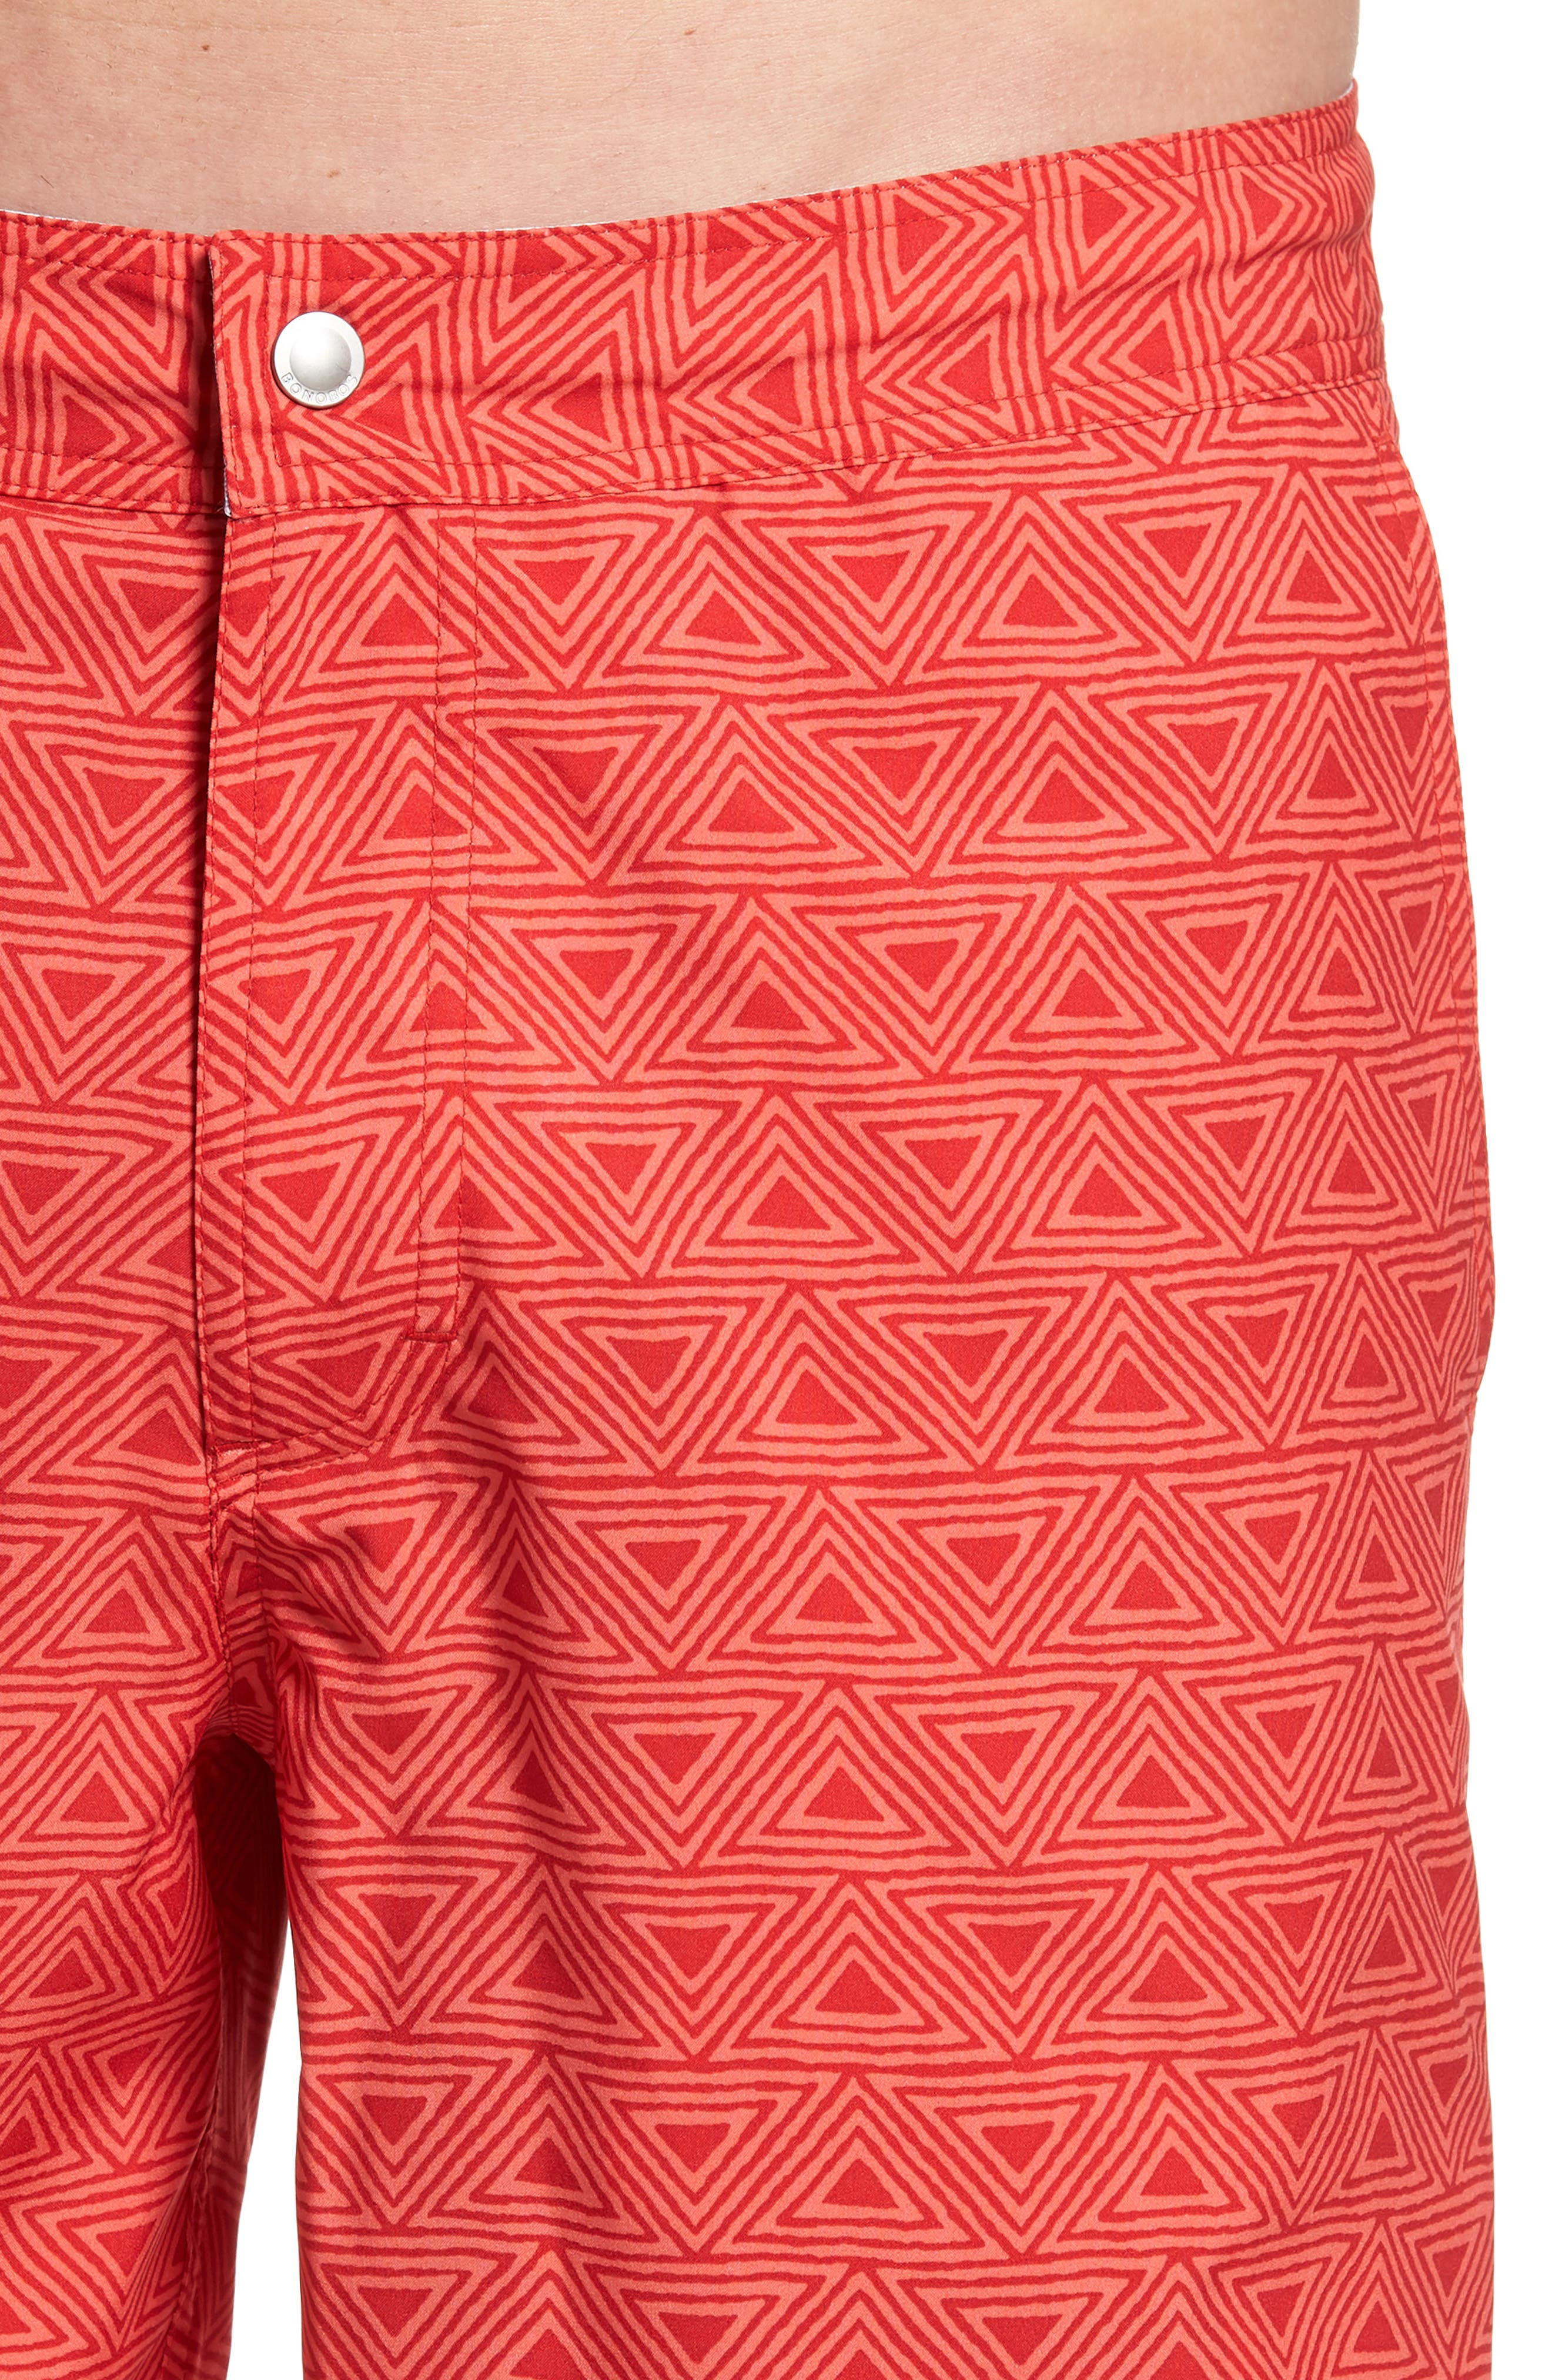 Geo Print 7-Inch Swim Trunks,                             Alternate thumbnail 4, color,                             650